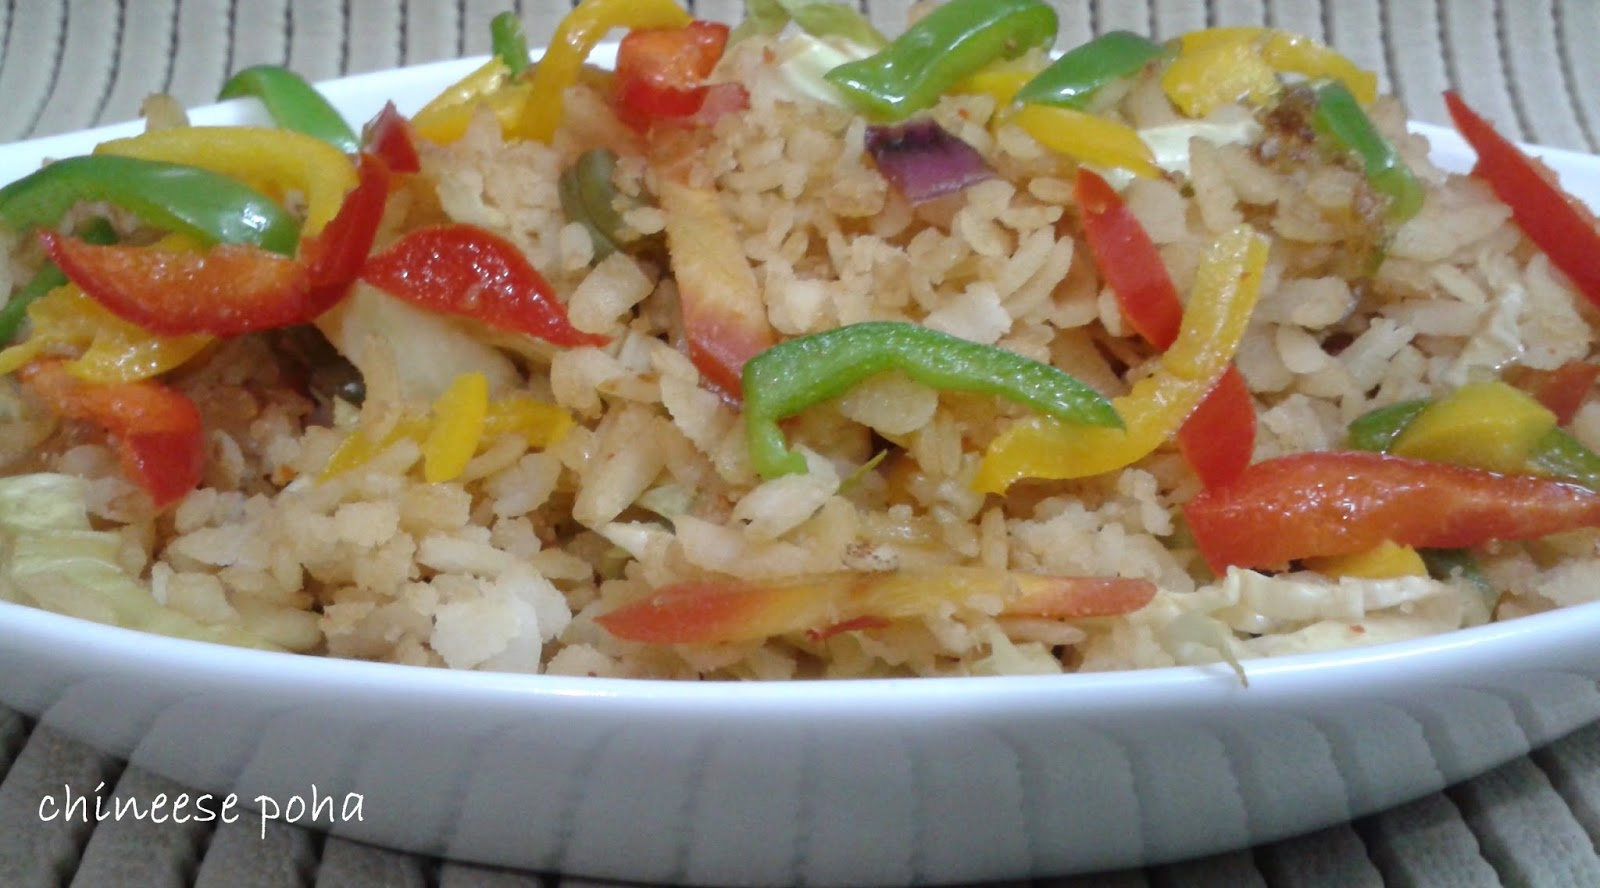 http://paakvidhi.blogspot.in/2014/02/chineese-poha.html